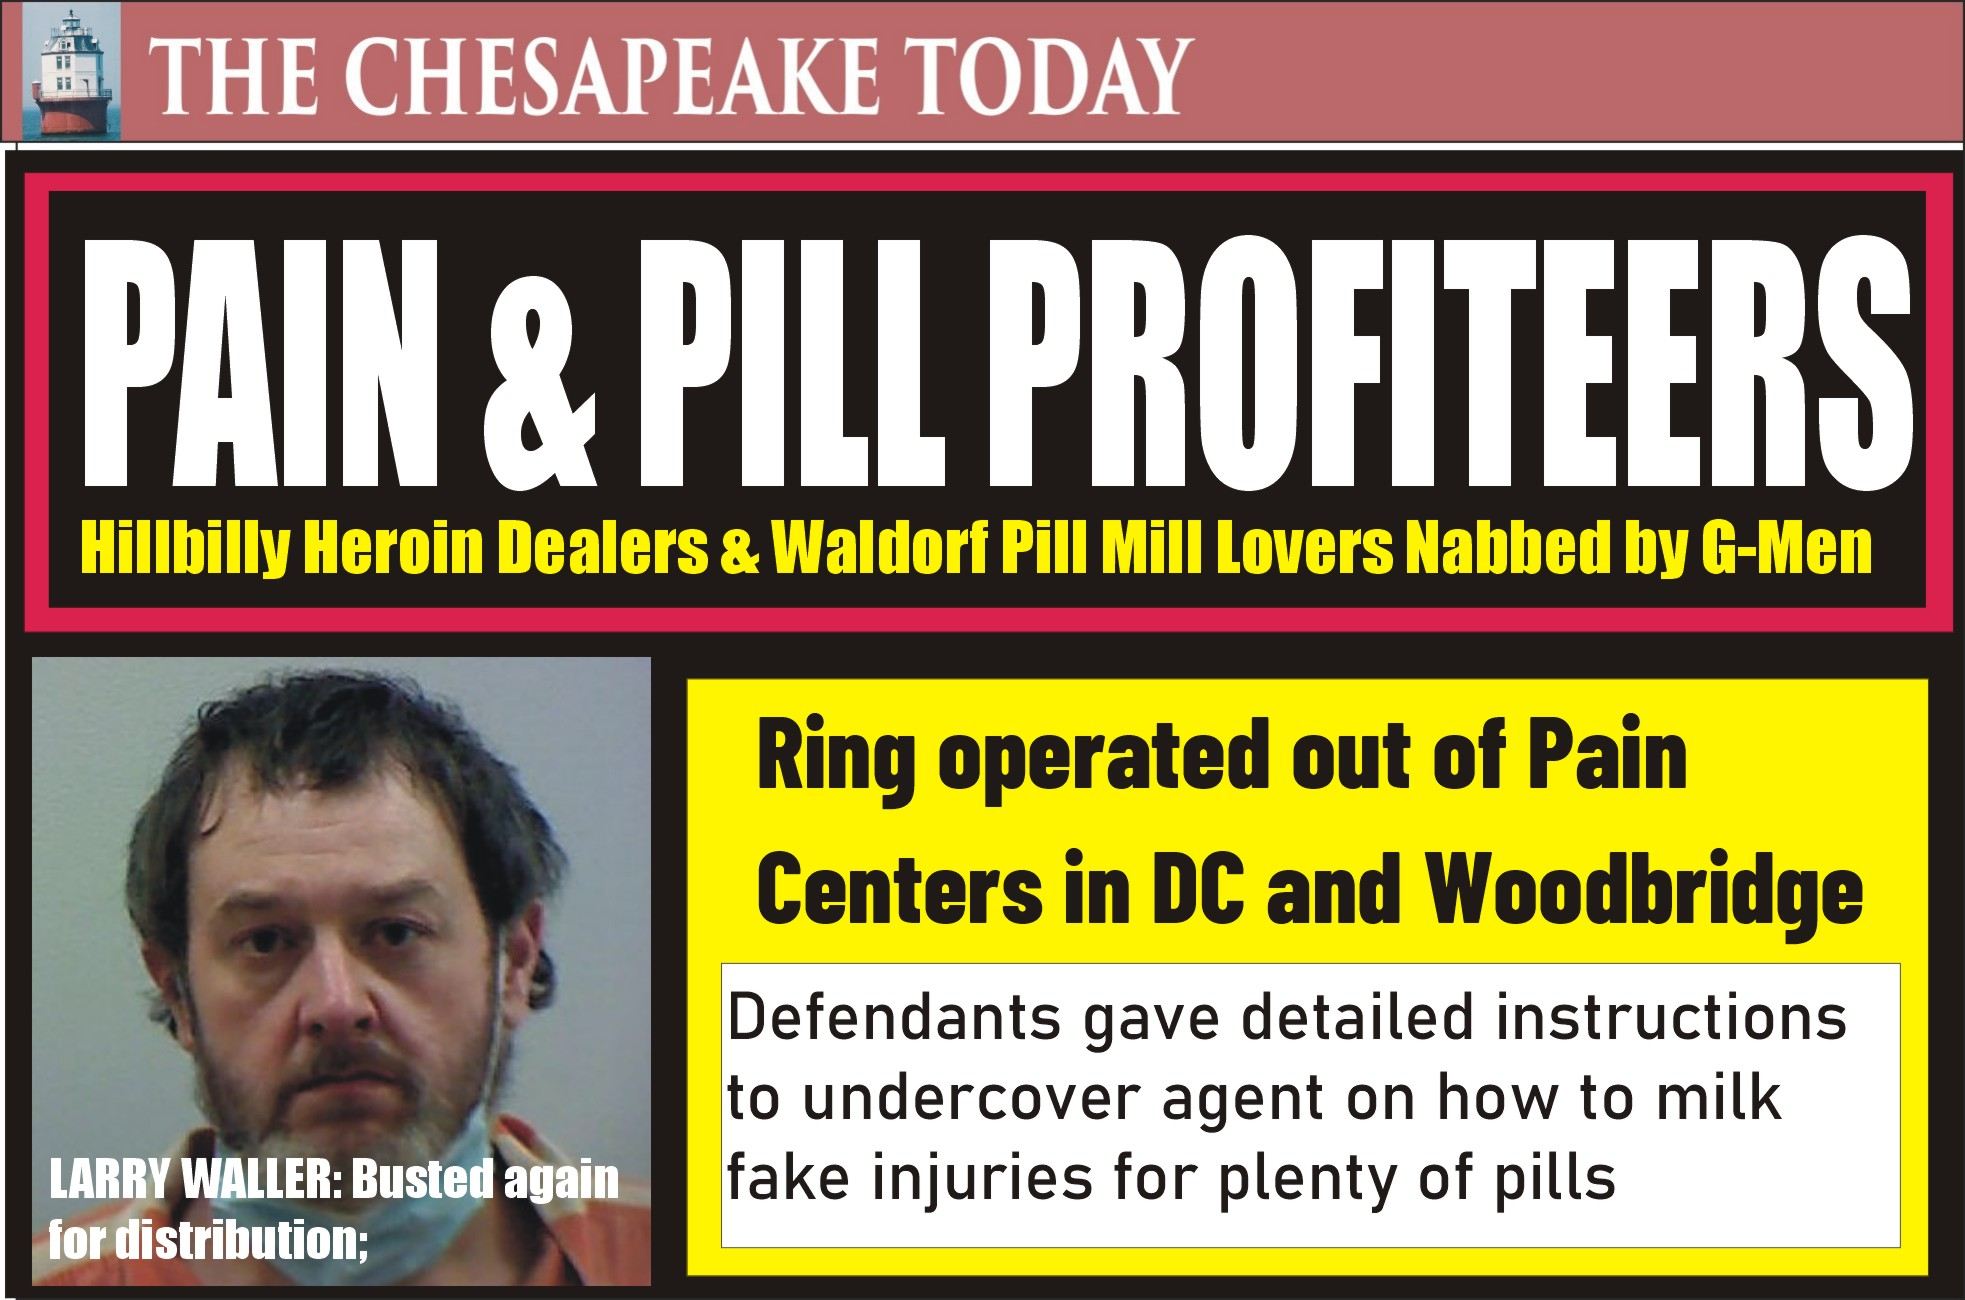 OPIOID PILL MILLS FUELED BY ROMANCE & GREED: Hillbilly Dealers Collude with Lovers Monica Clark and Michael Scott, say Feds